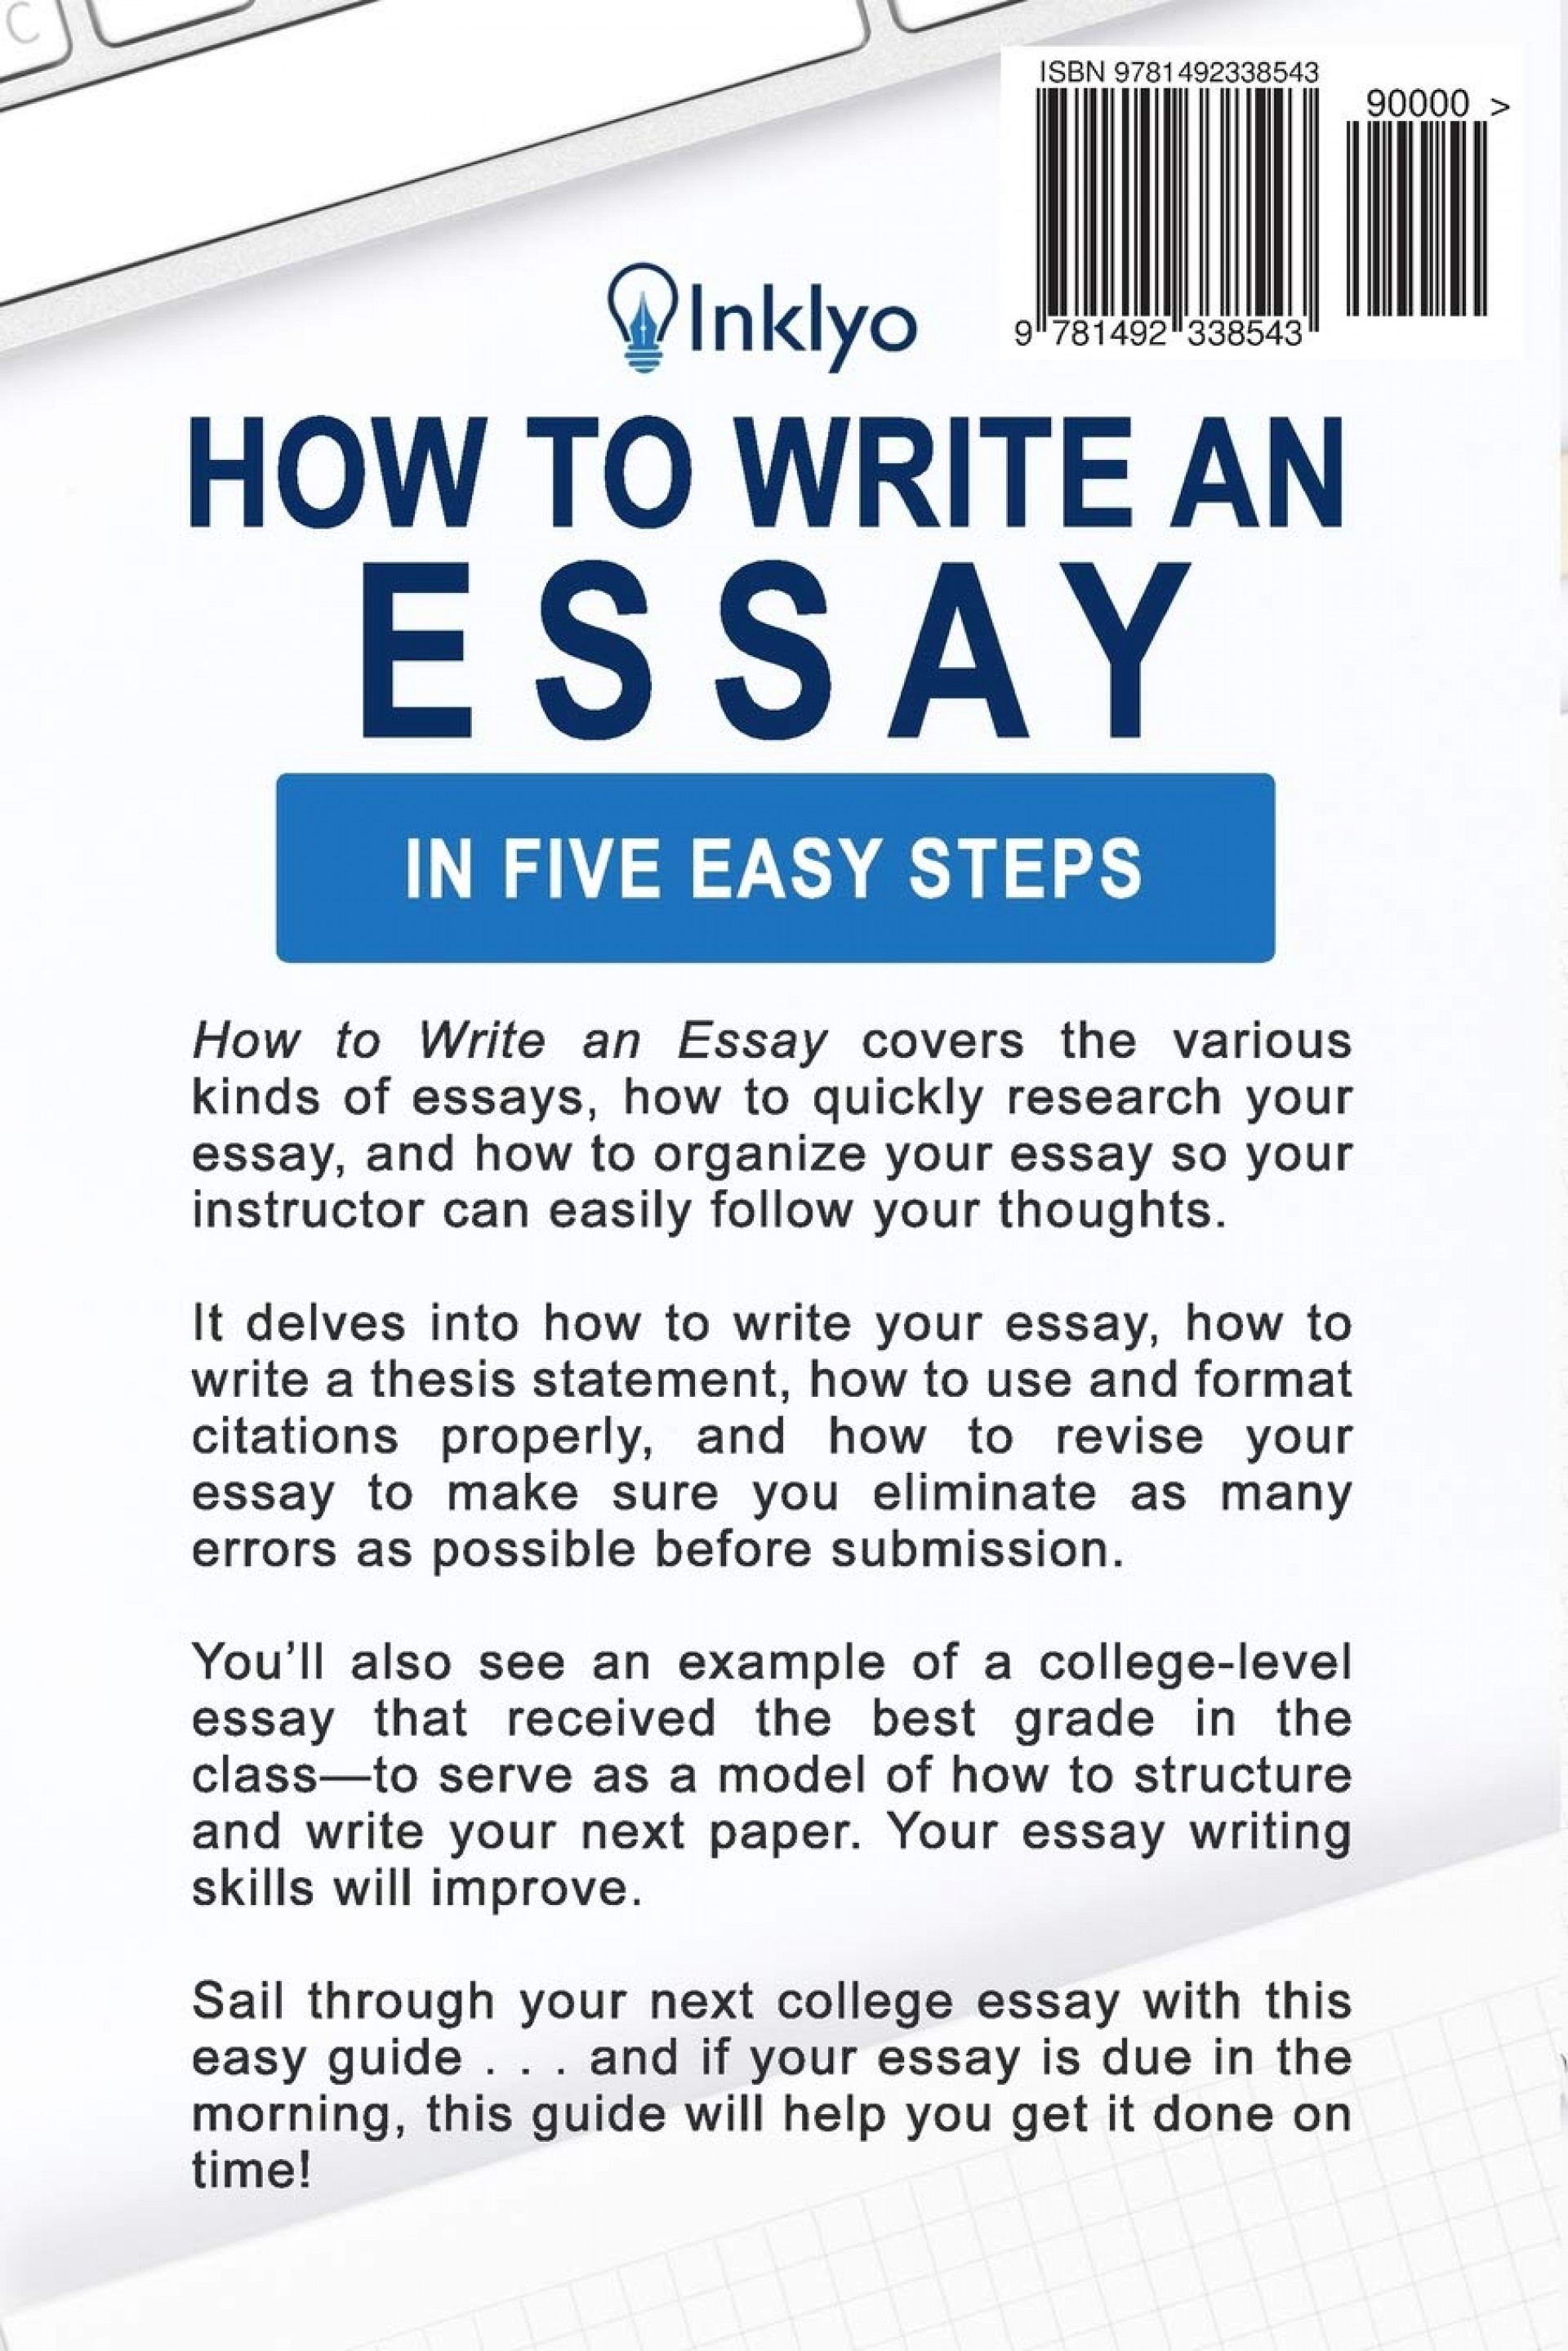 004 71v7ckw5pll Essay Example Steps To Writing Stunning An Middle School Argumentative 1920